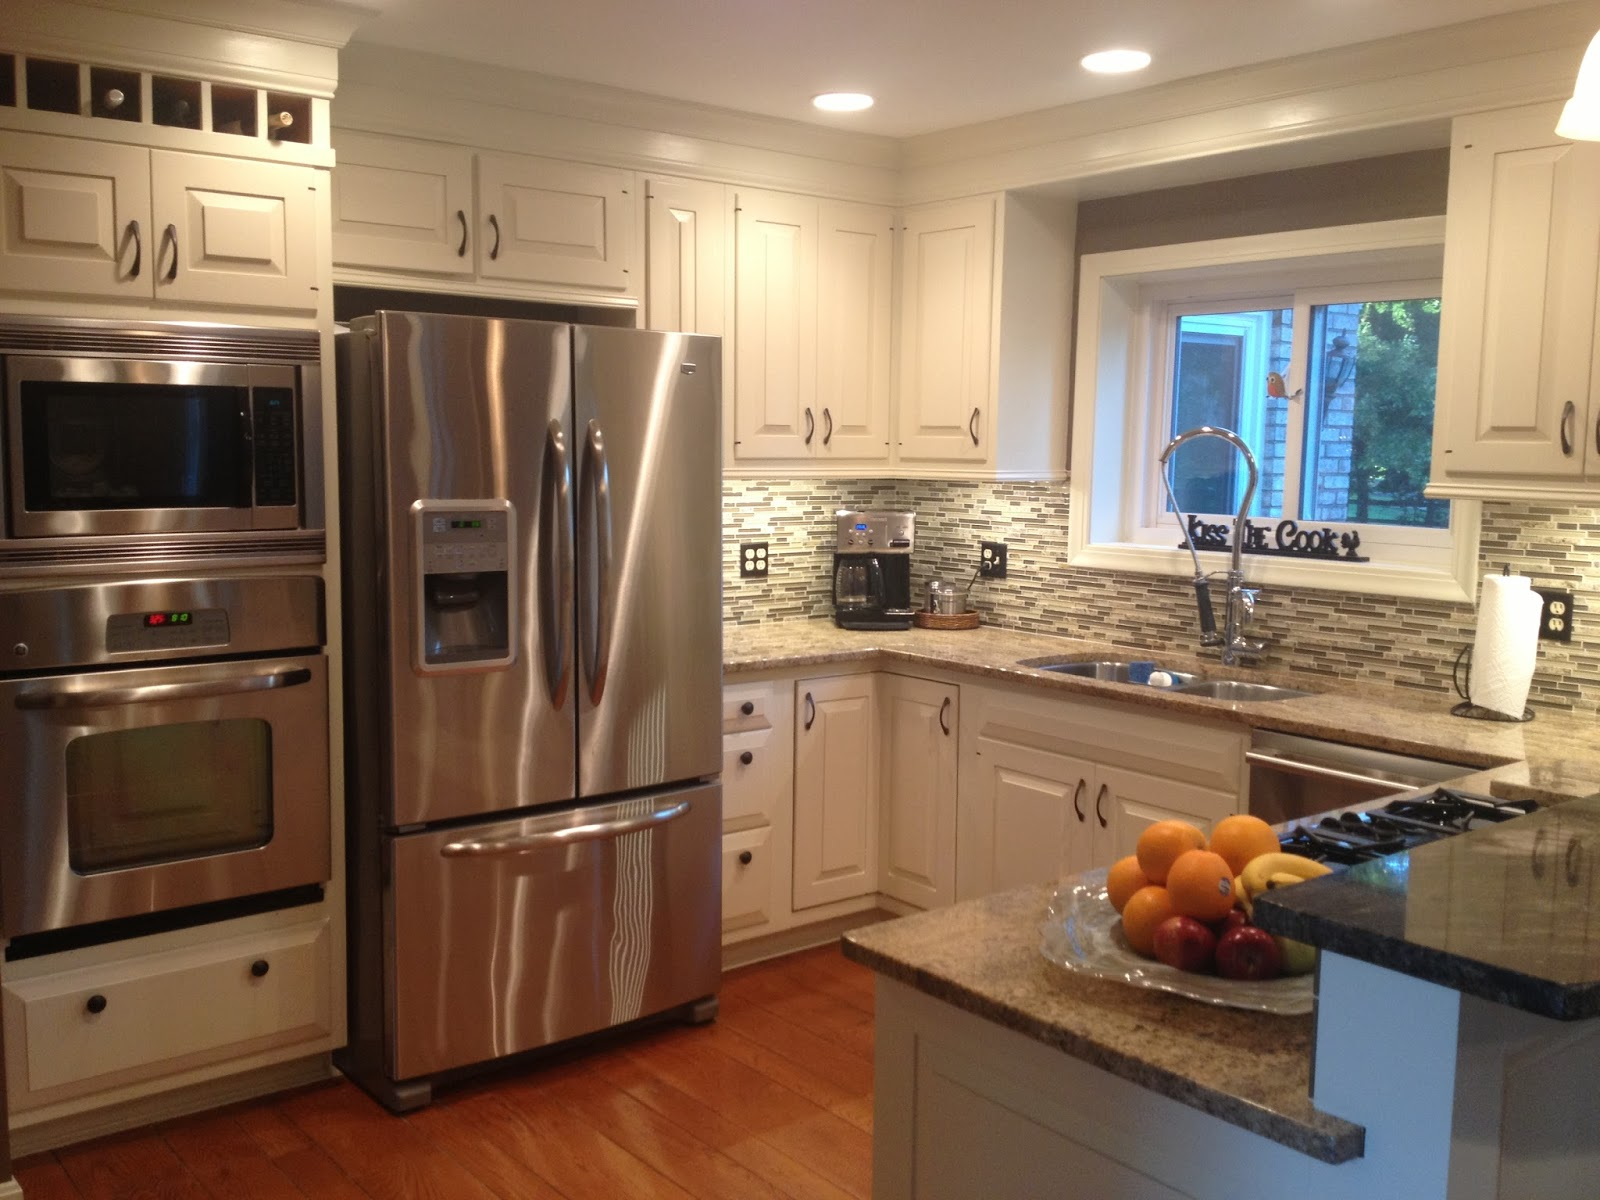 Four seasons style the new kitchen remodel on a budget for Kitchen renovation